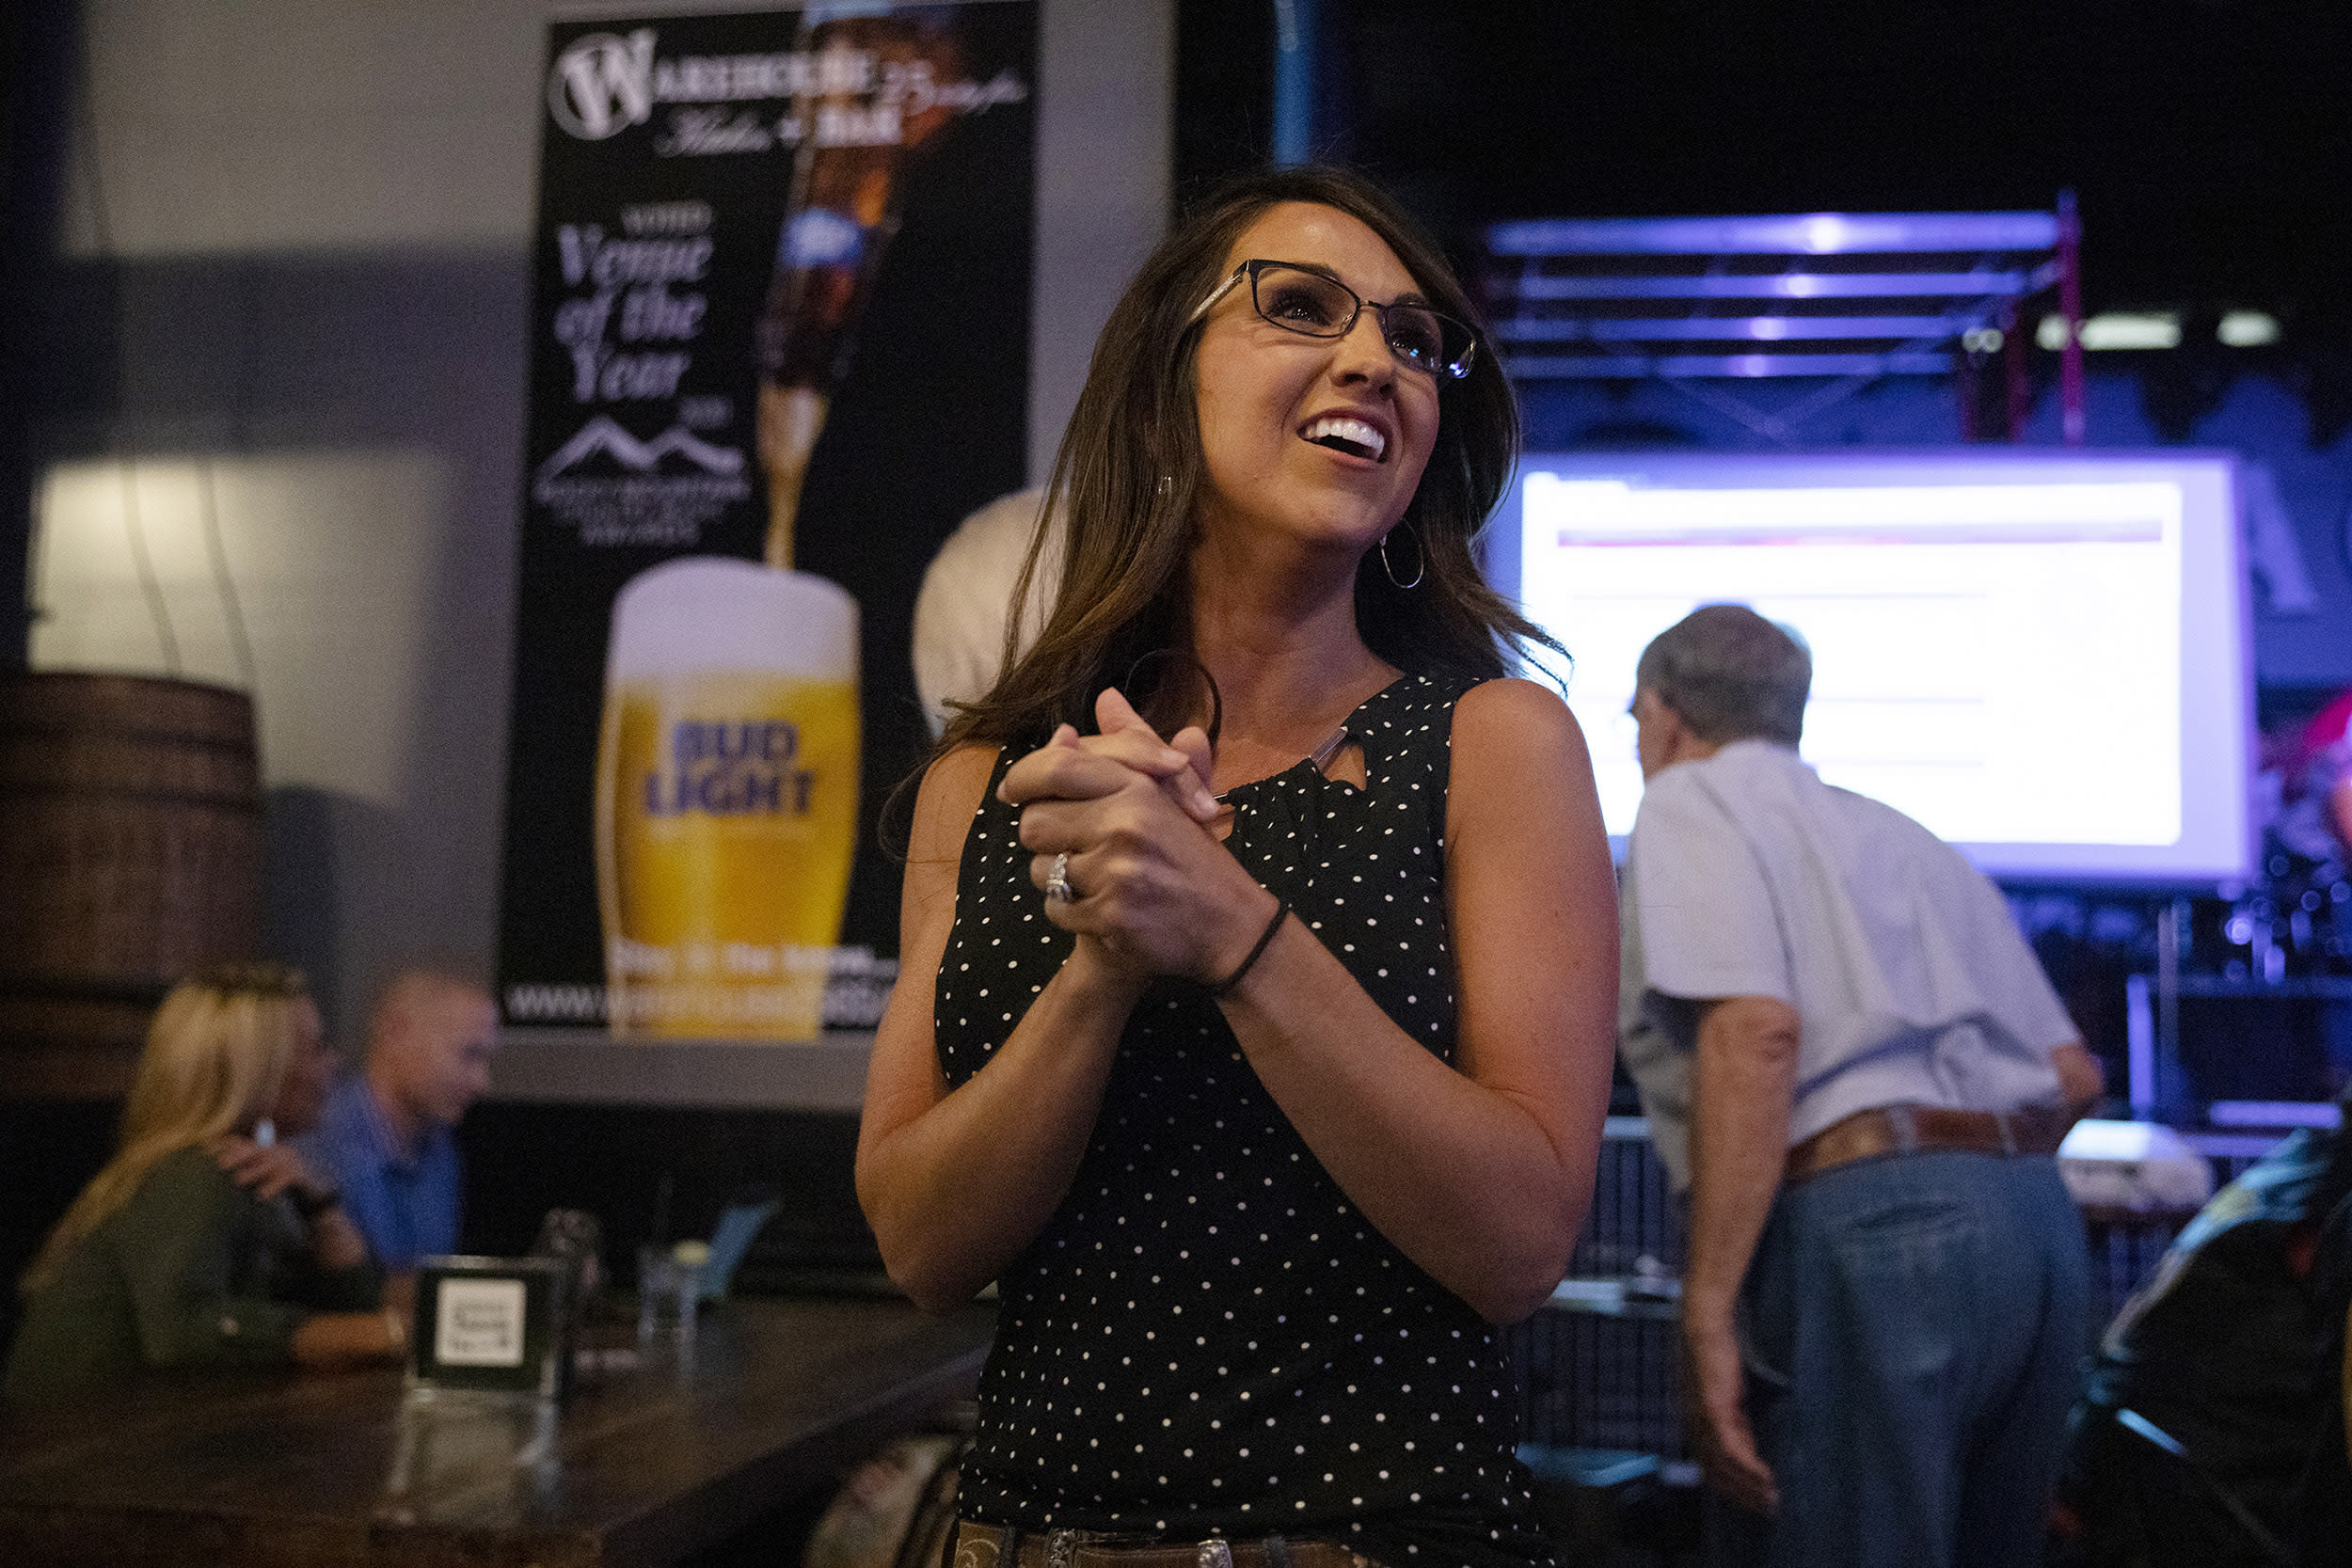 Lauren Boebert fought the lockdown, carries a pistol and hopes QAnon is real. And she just won a GOP primary.